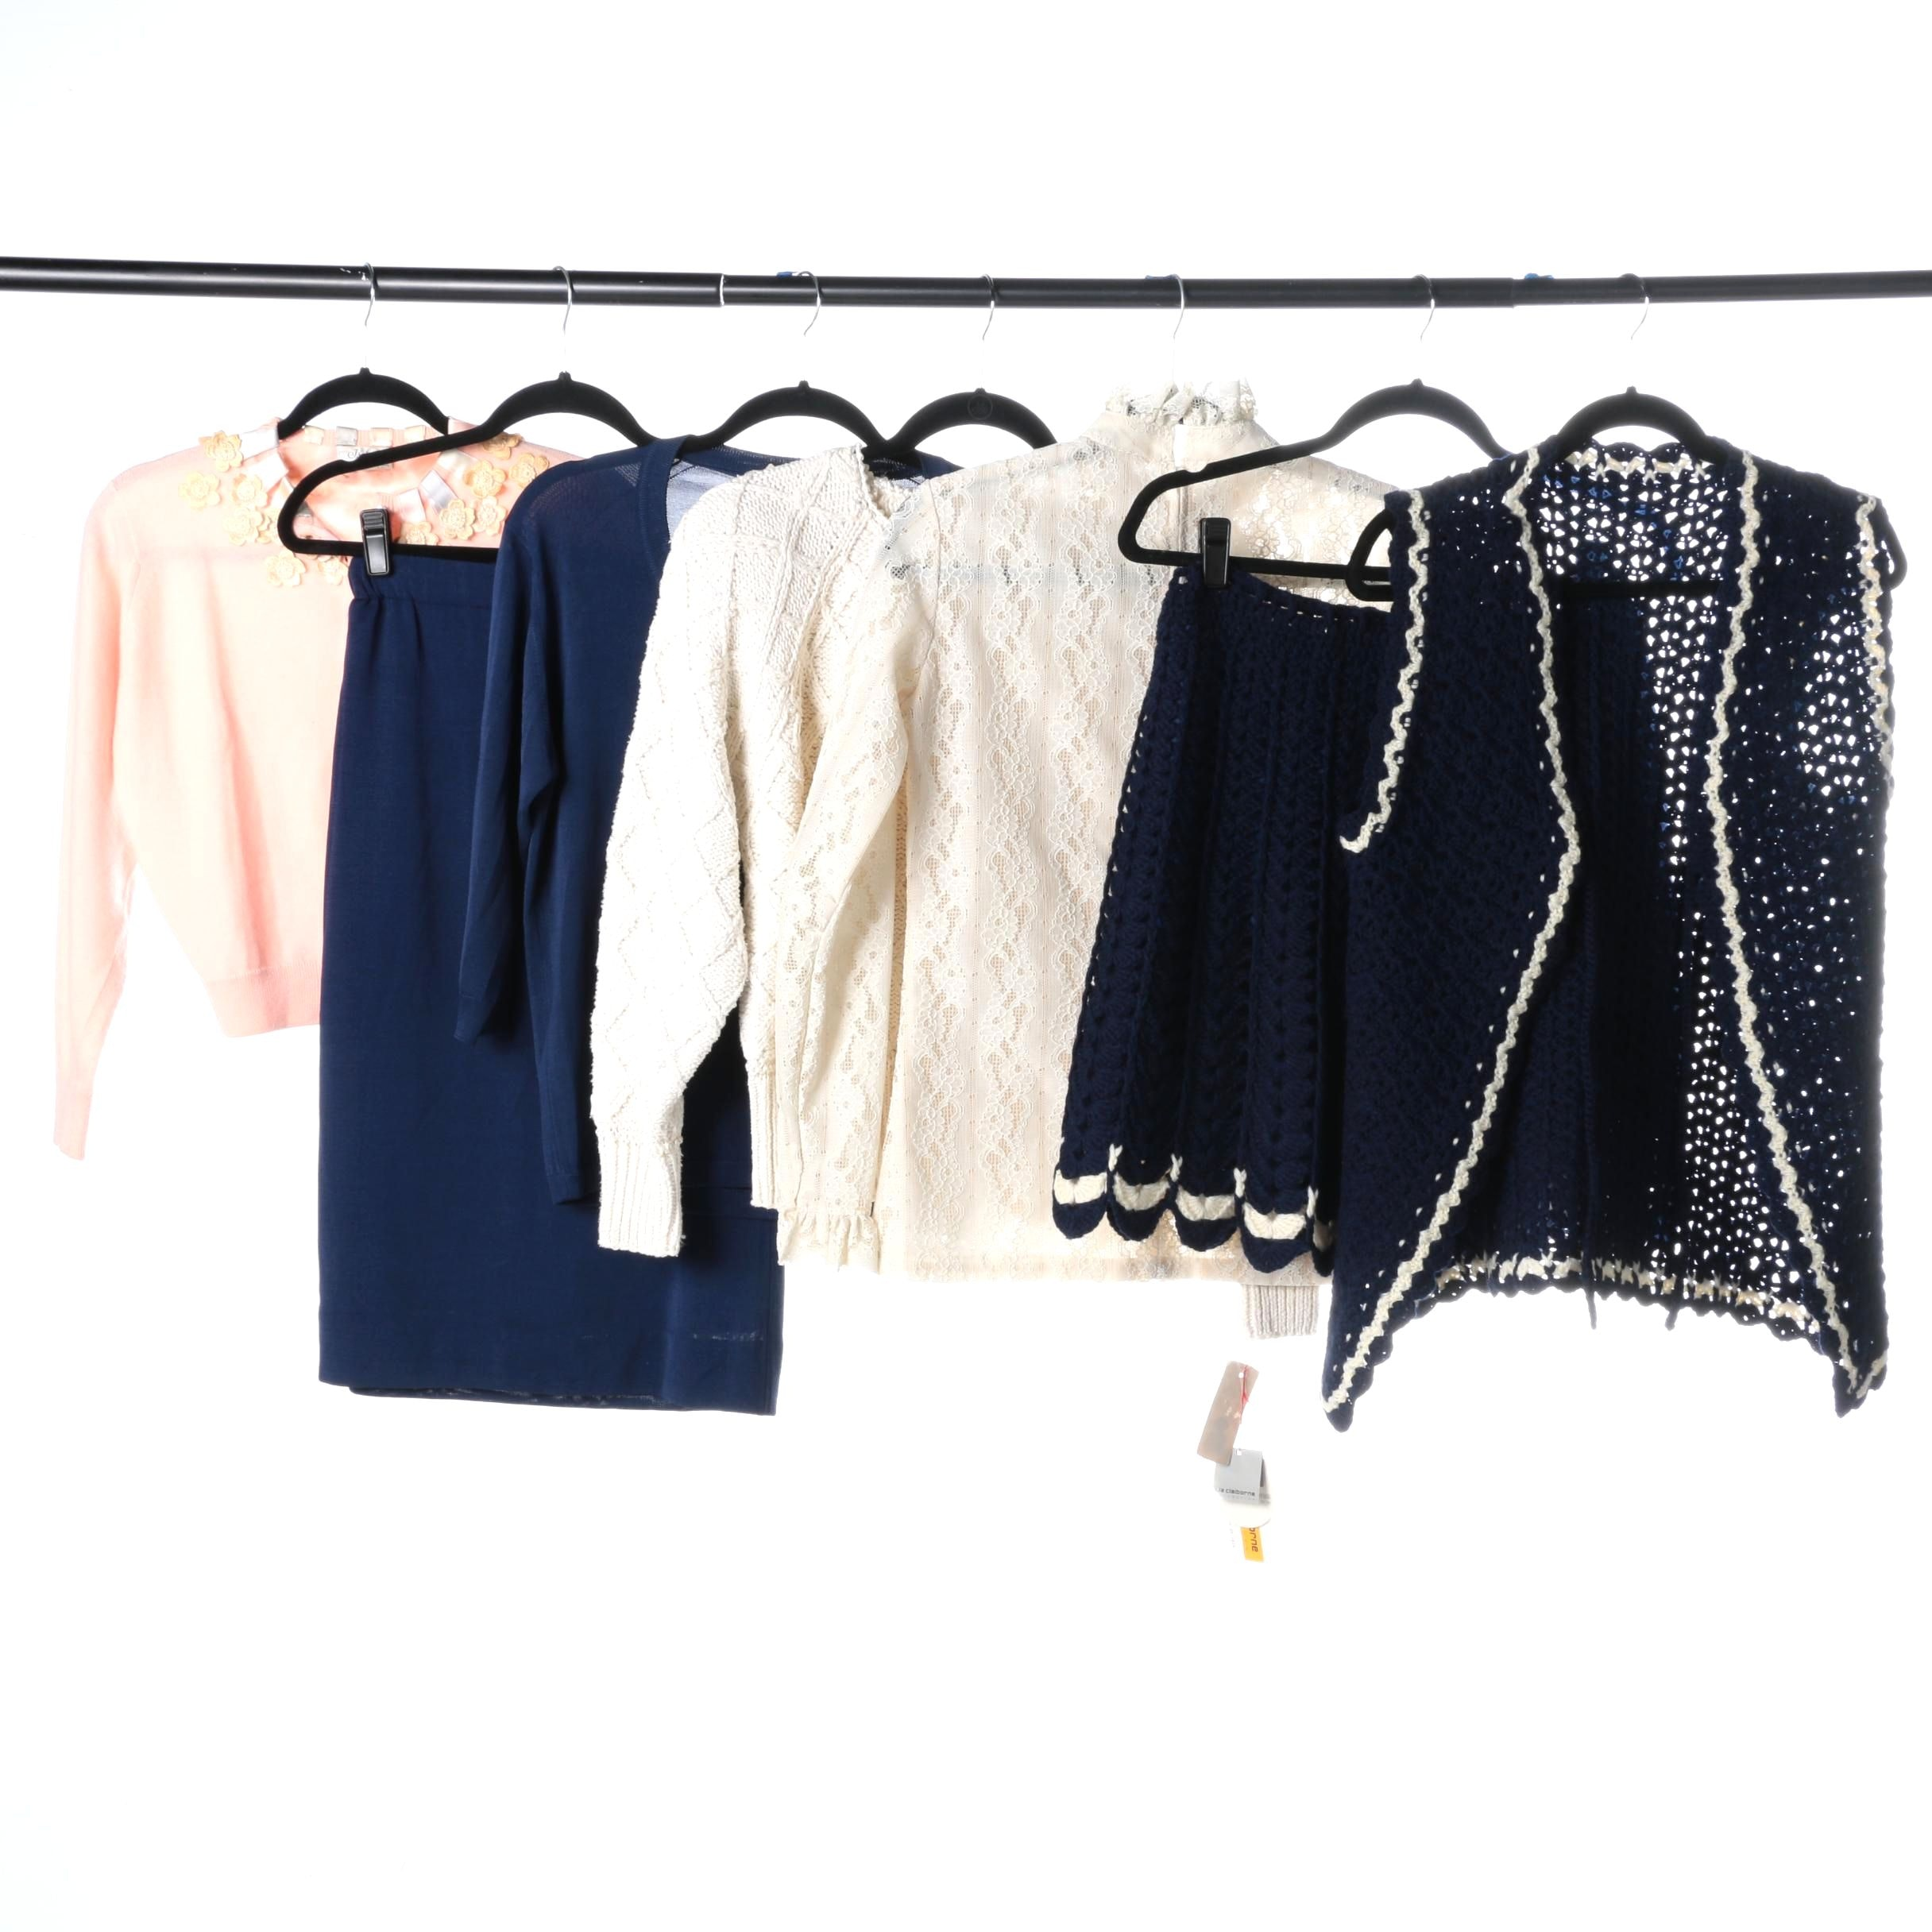 Vintage Knitwear and Separates